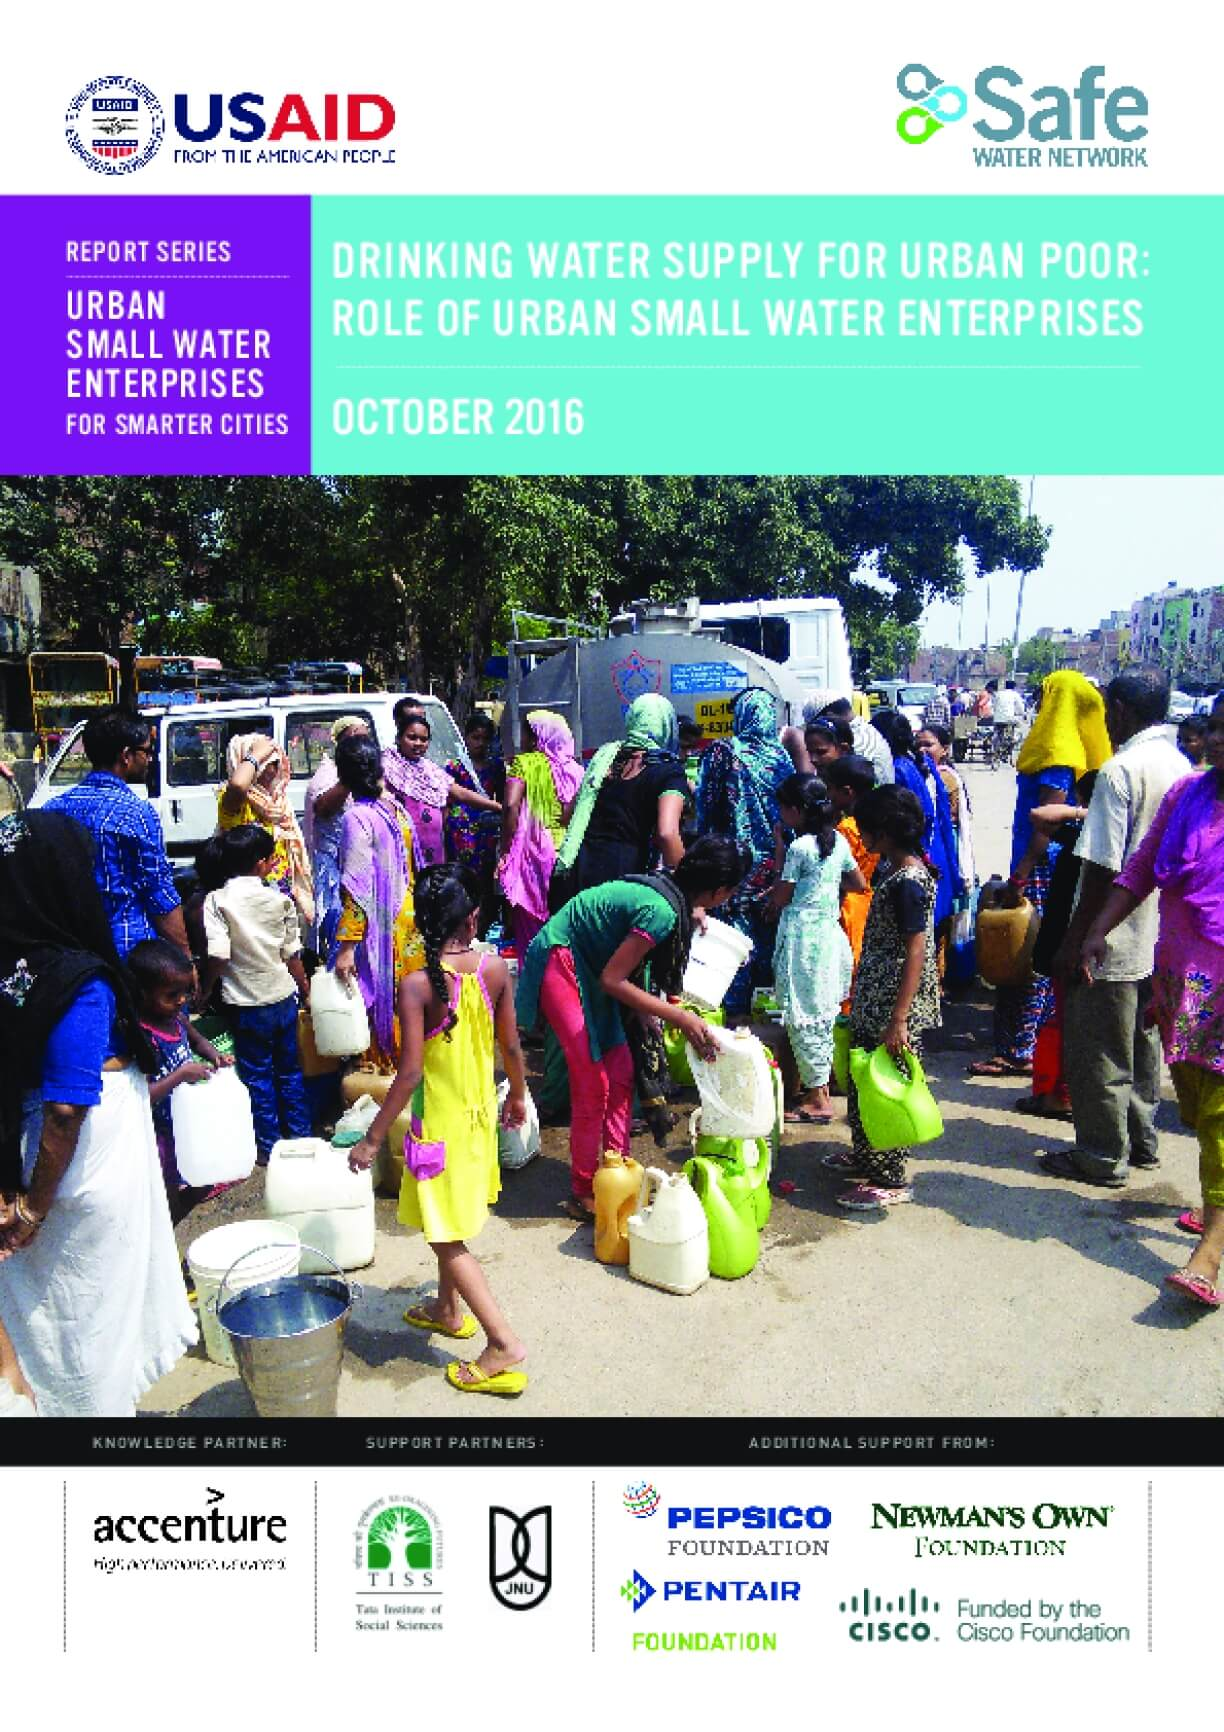 Drinking Water Supply for Urban Poor: Role of Urban Small